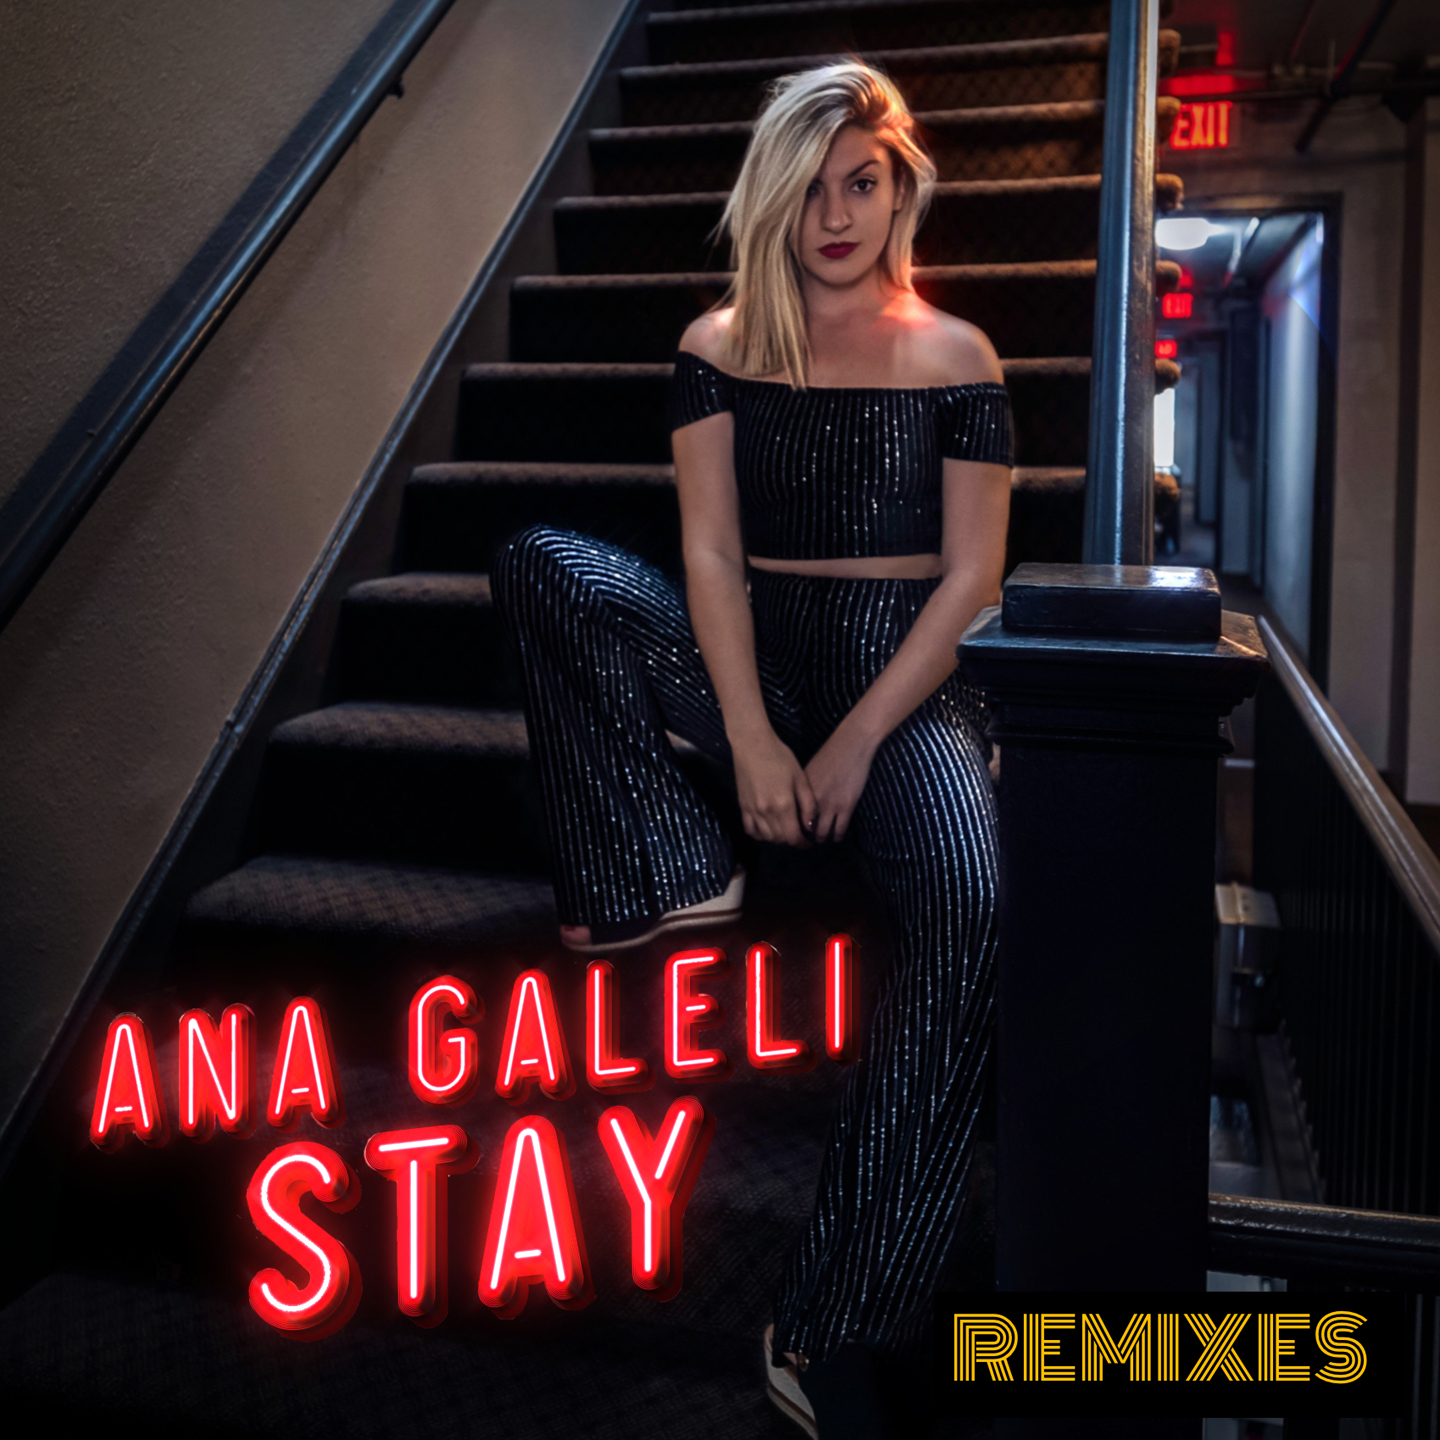 Ana Galeli - Stay Remixes